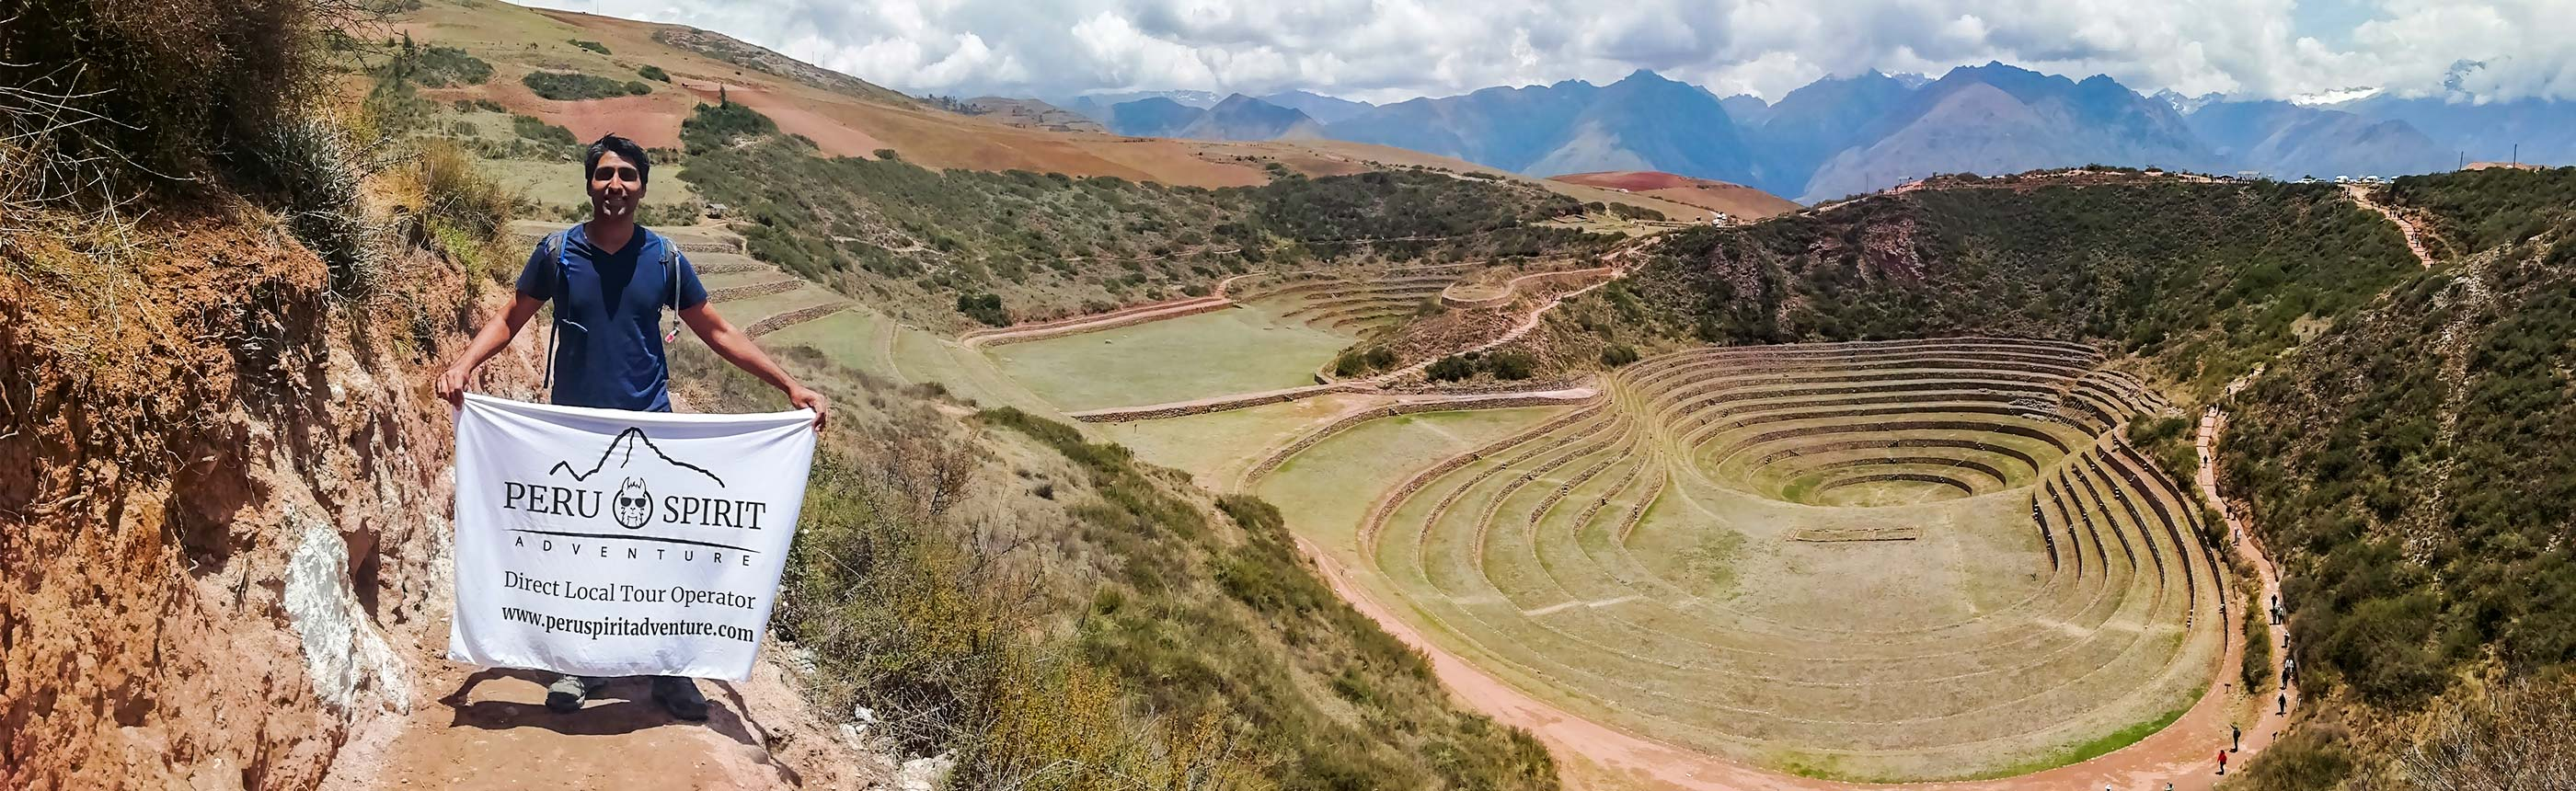 Moray — Incan Agricultural Terraces